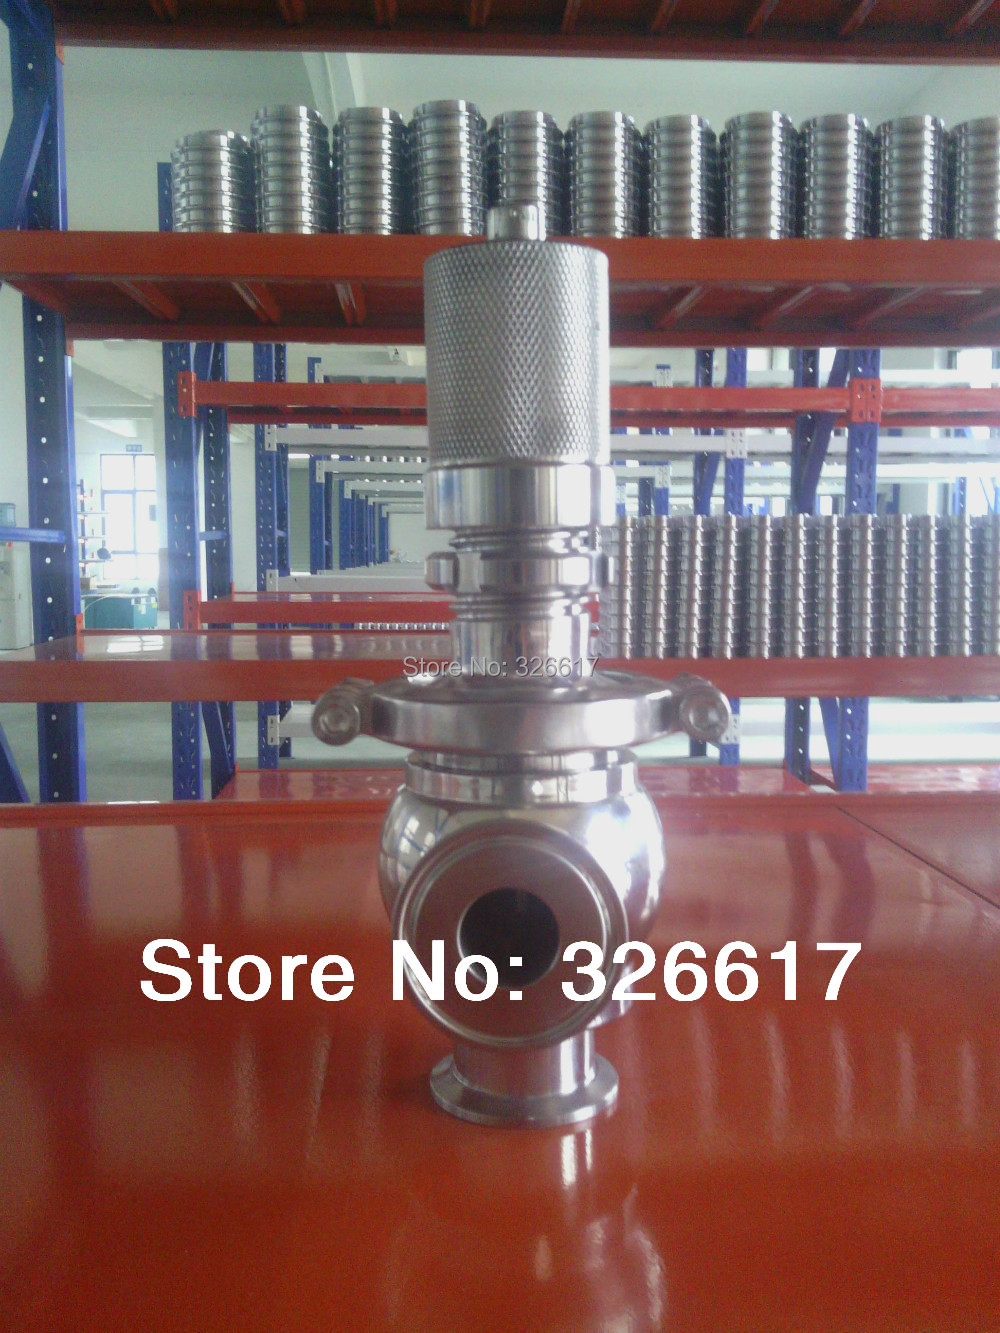 1set 45mm 1 75 1 75 1 3 4 inch od ss304 ss316 304 316 stainless steel sanitary pipe weld ferrule tri clamp ptfe gasket Sanitary 11/2inch Tri Clamp Safety Valve SS304 Stainless Steel Pipeline Air Release Valve